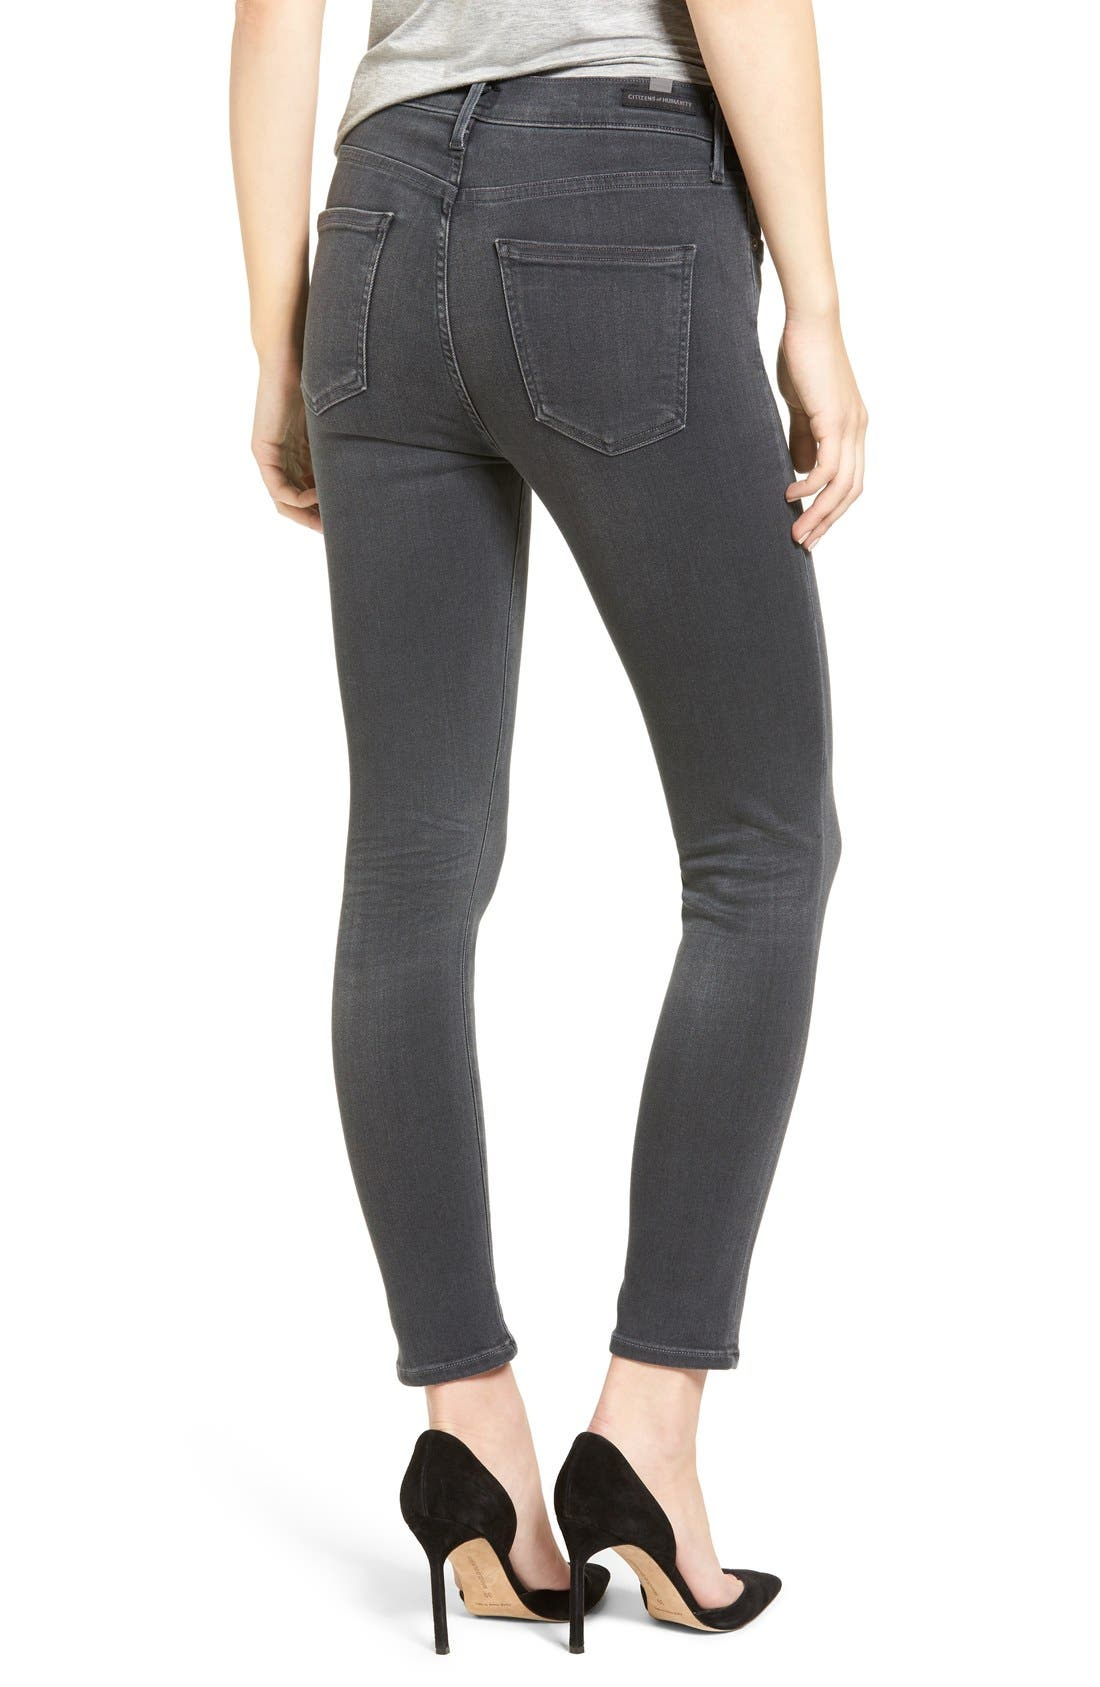 Rocket High Waist Crop Skinny Jeans,                             Alternate thumbnail 2, color,                             002